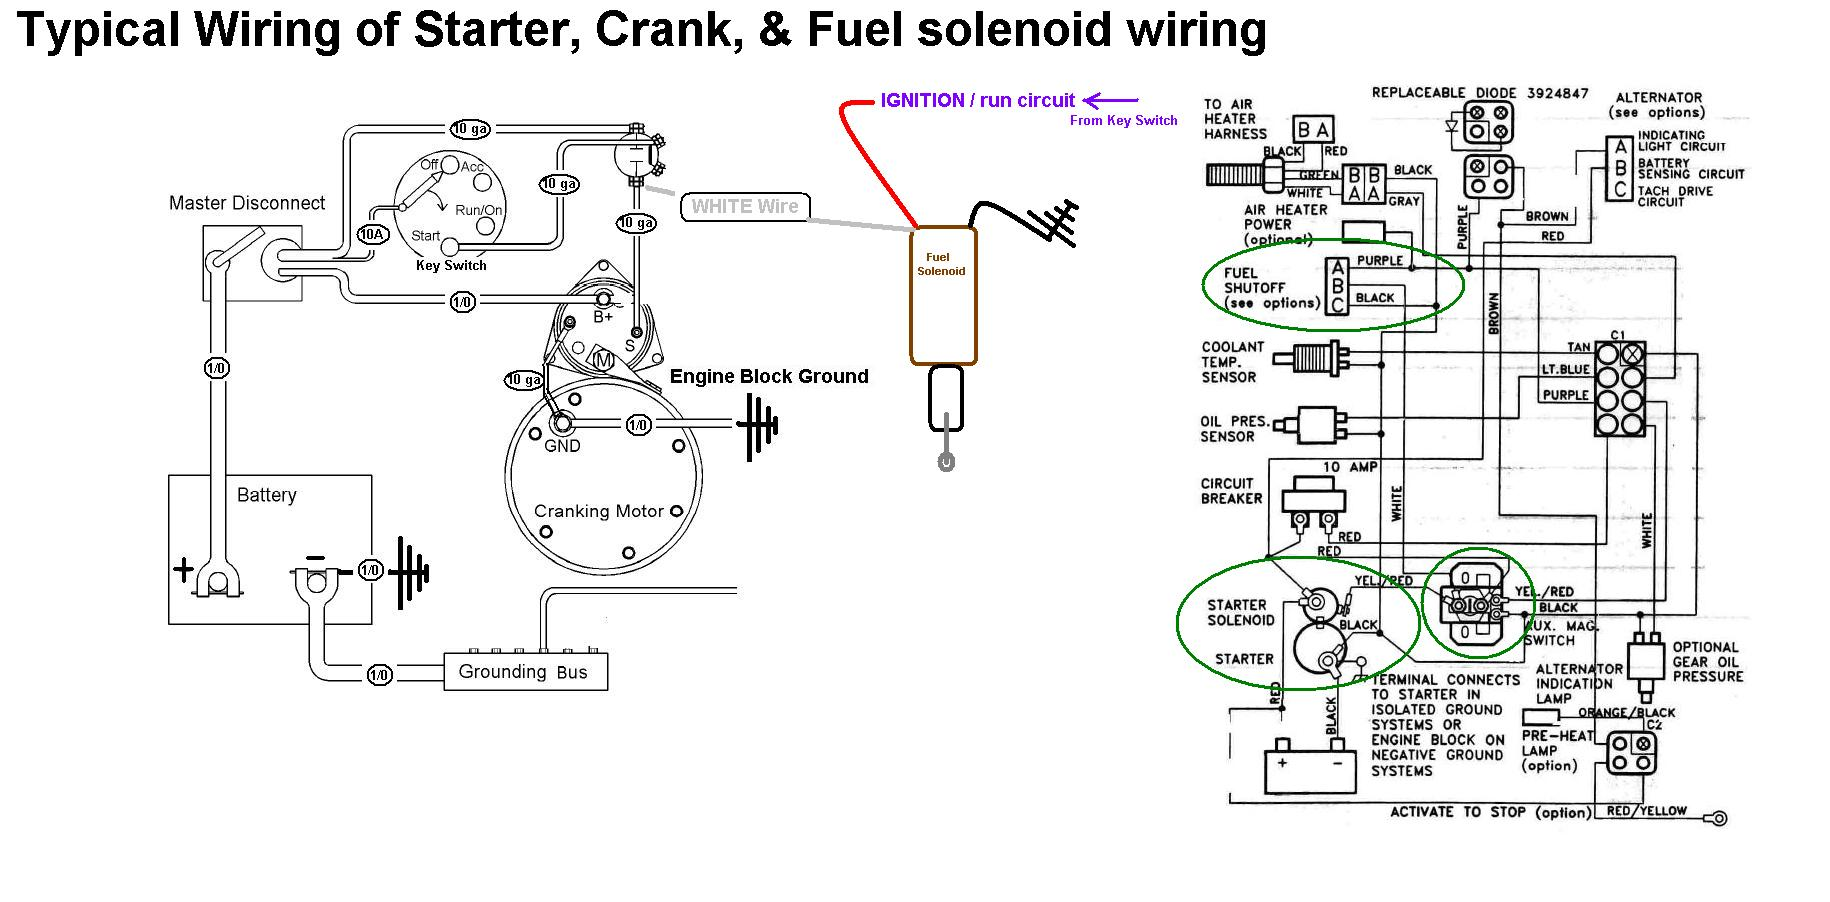 Kubota Fuel Shut Off Solenoid Wiring Diagram